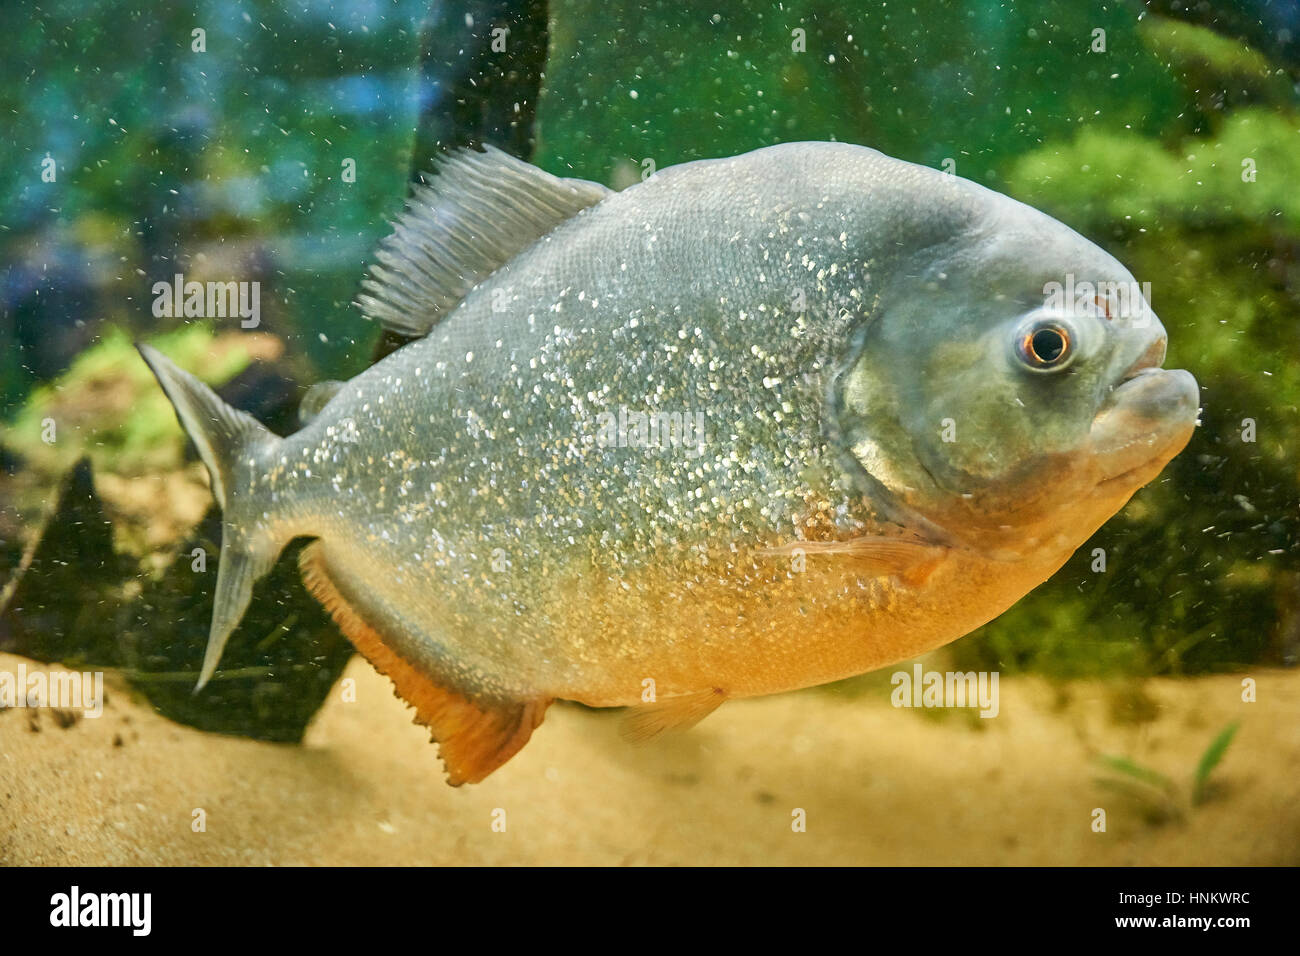 Piranha Fish Stock Photos & Piranha Fish Stock Images - Alamy